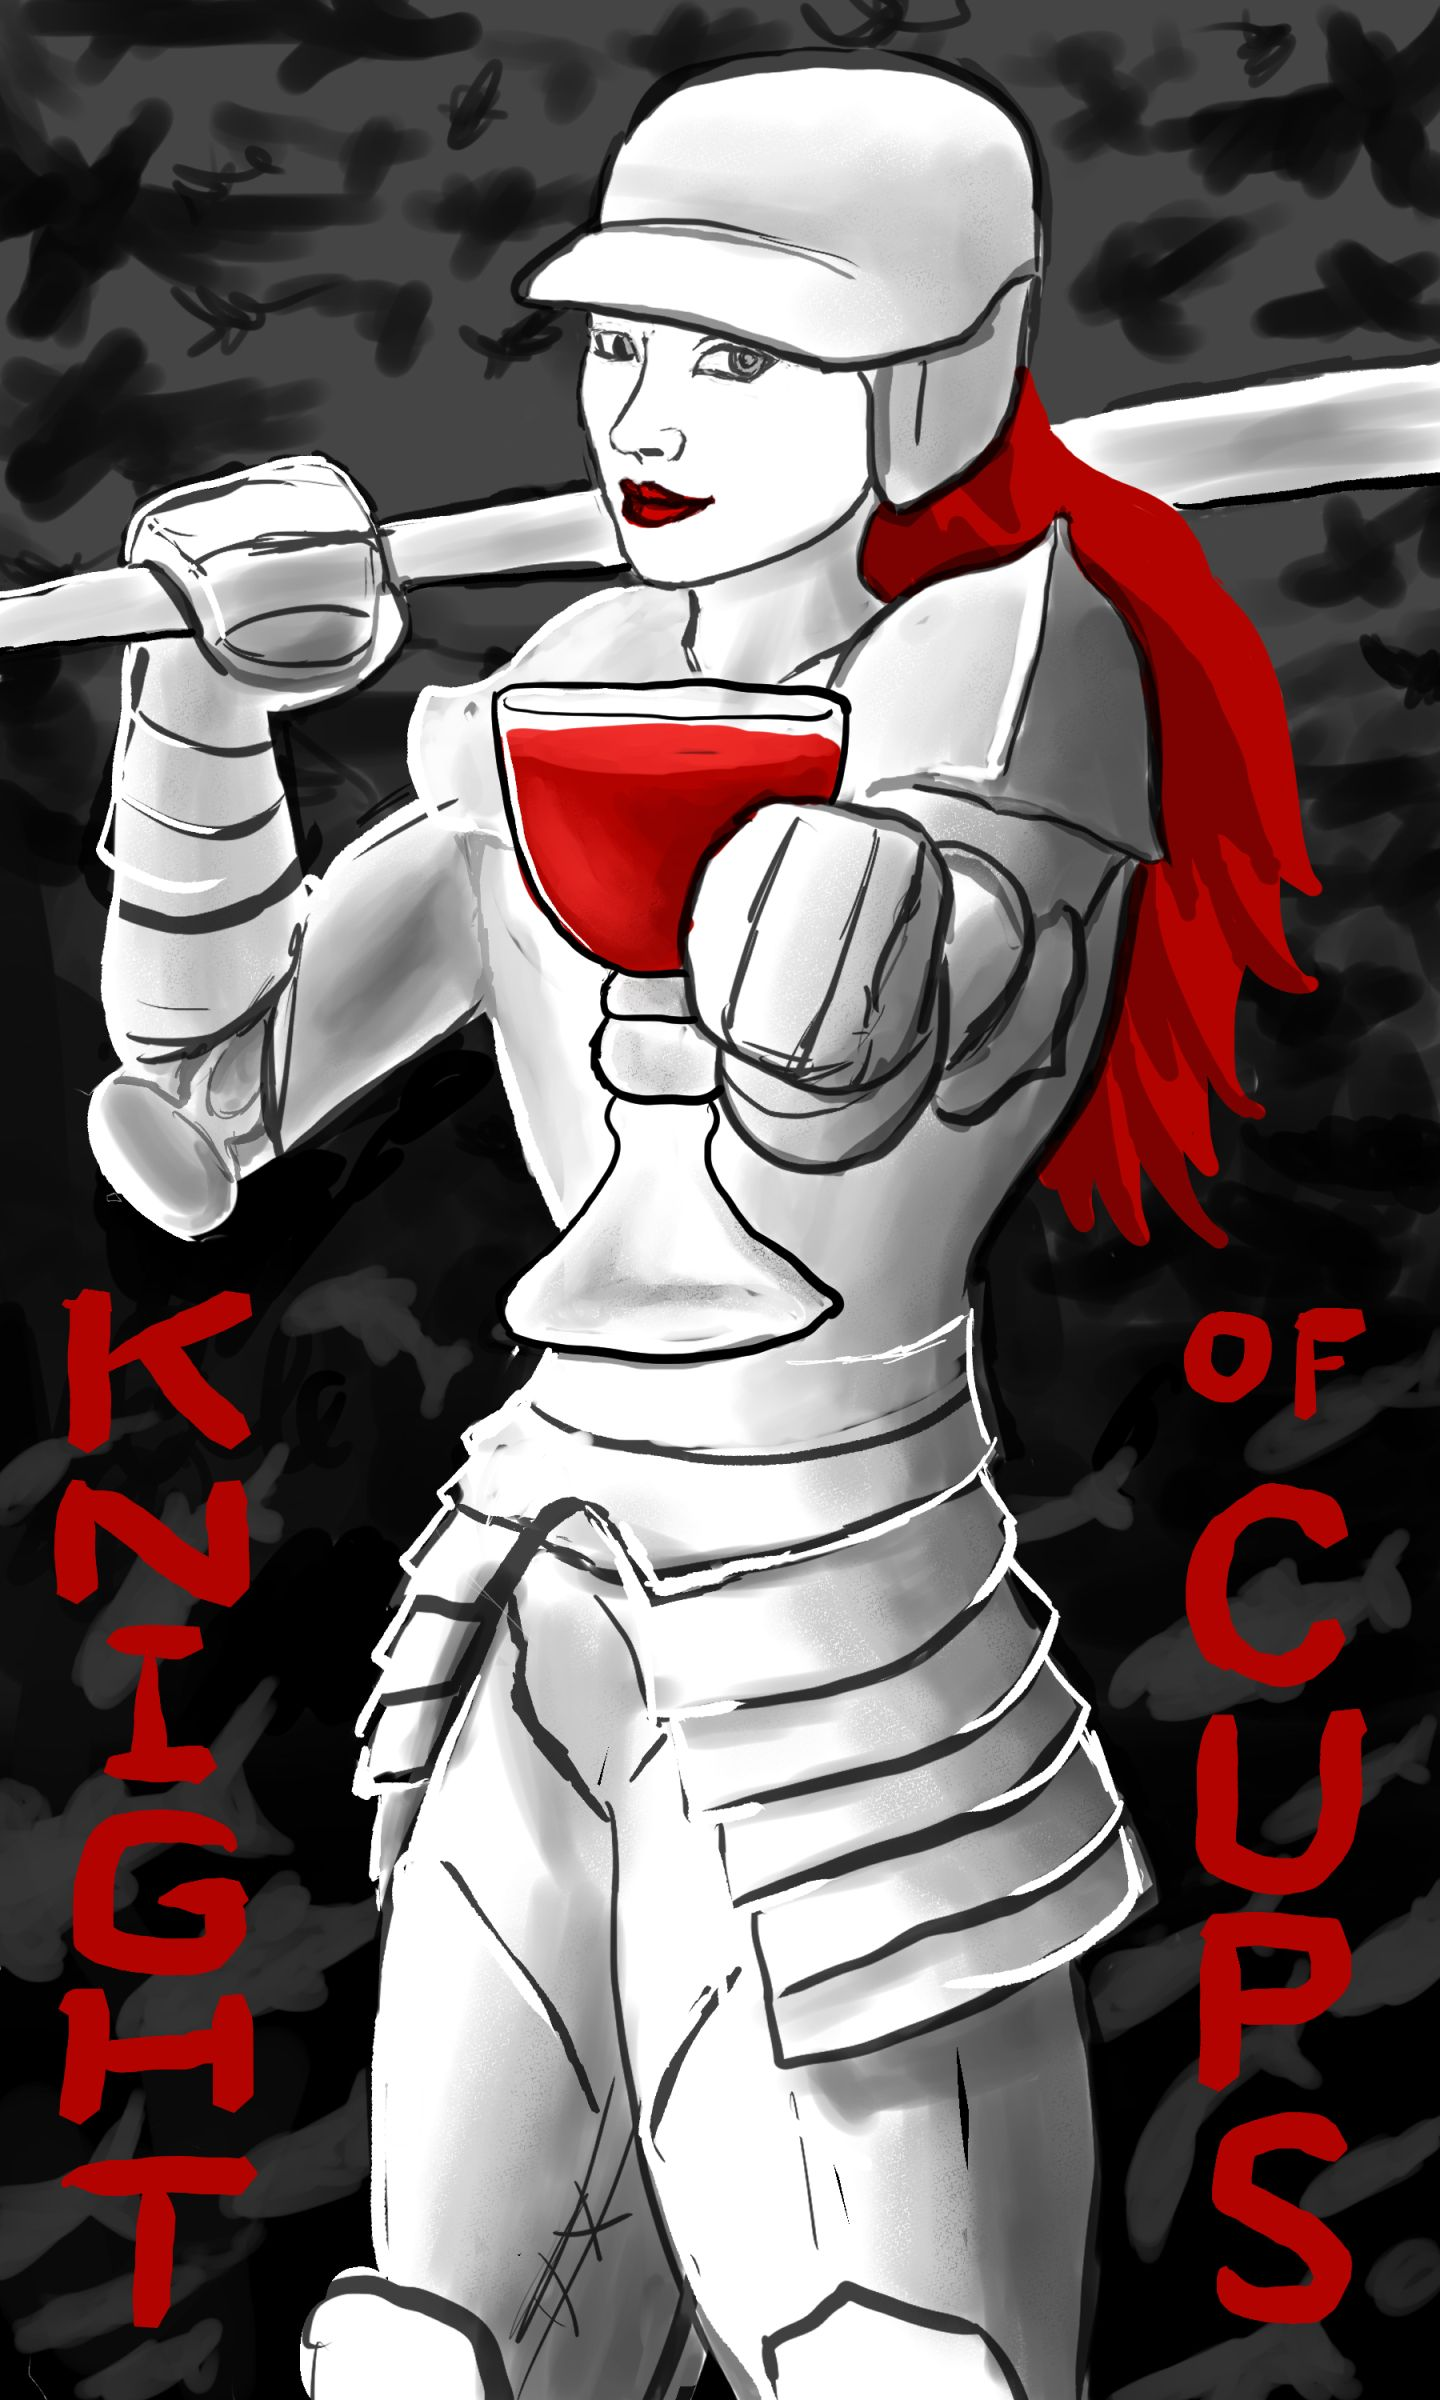 Knight of Cups: A woman clad in white knight's armour, with blood-red hair, holding a baseball bat over her right shoulder while offering the viewer a cup of red liquid with her left hand. The background behind her is grey at the top, with indistinct figures of birds in black; it is black at the bottom, with indistinct figures of sharks swimming in grey.